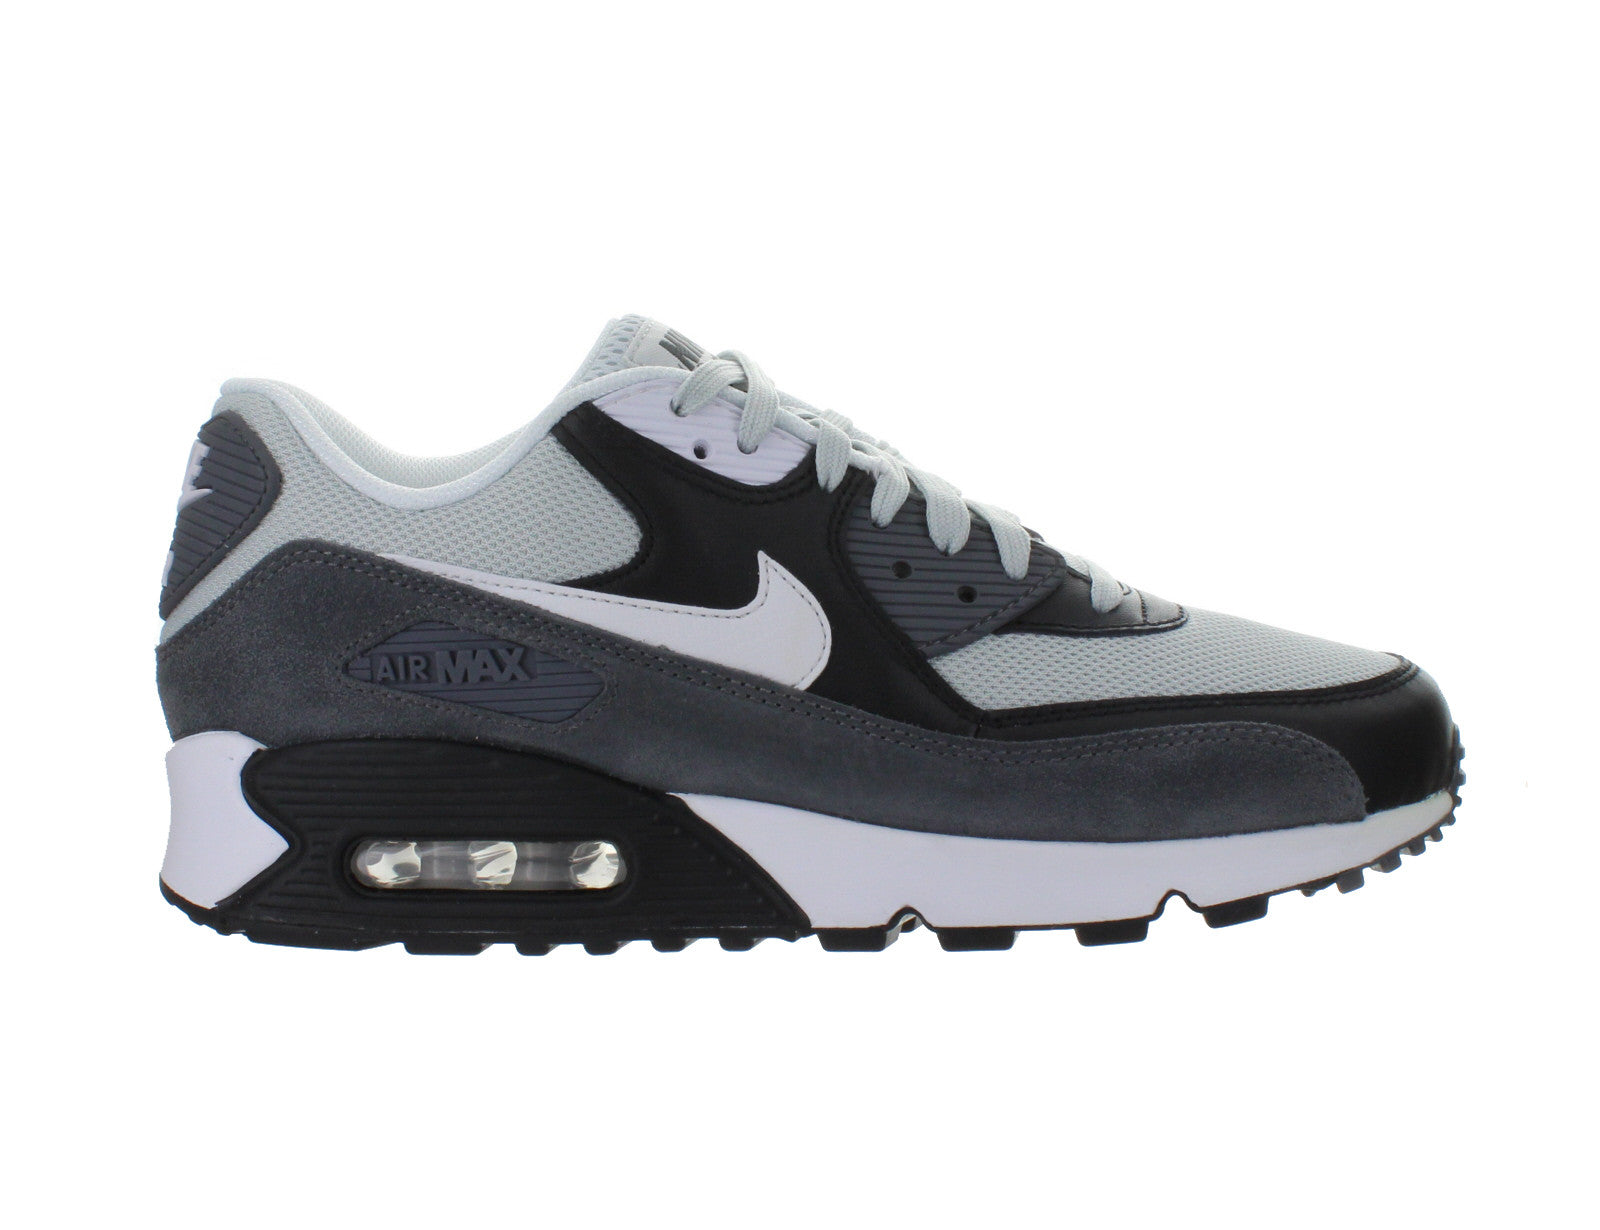 where can i buy nike air max 90 prm picnic ebay 8e69e f3c39